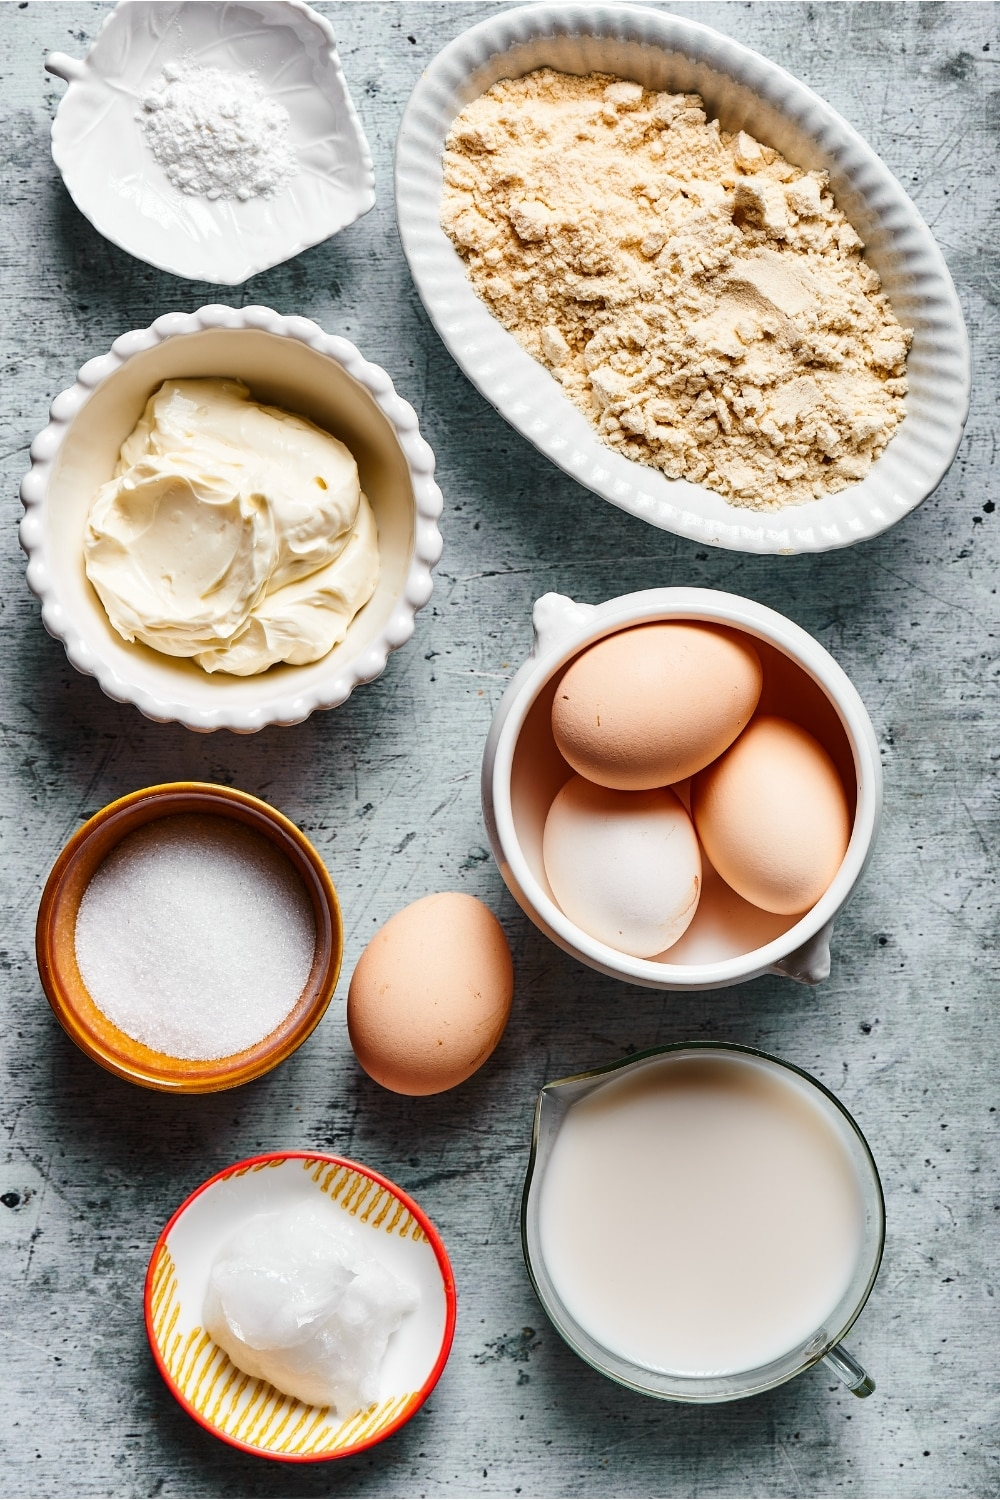 Ingredients for cream cheese pancakes and a gray counter.